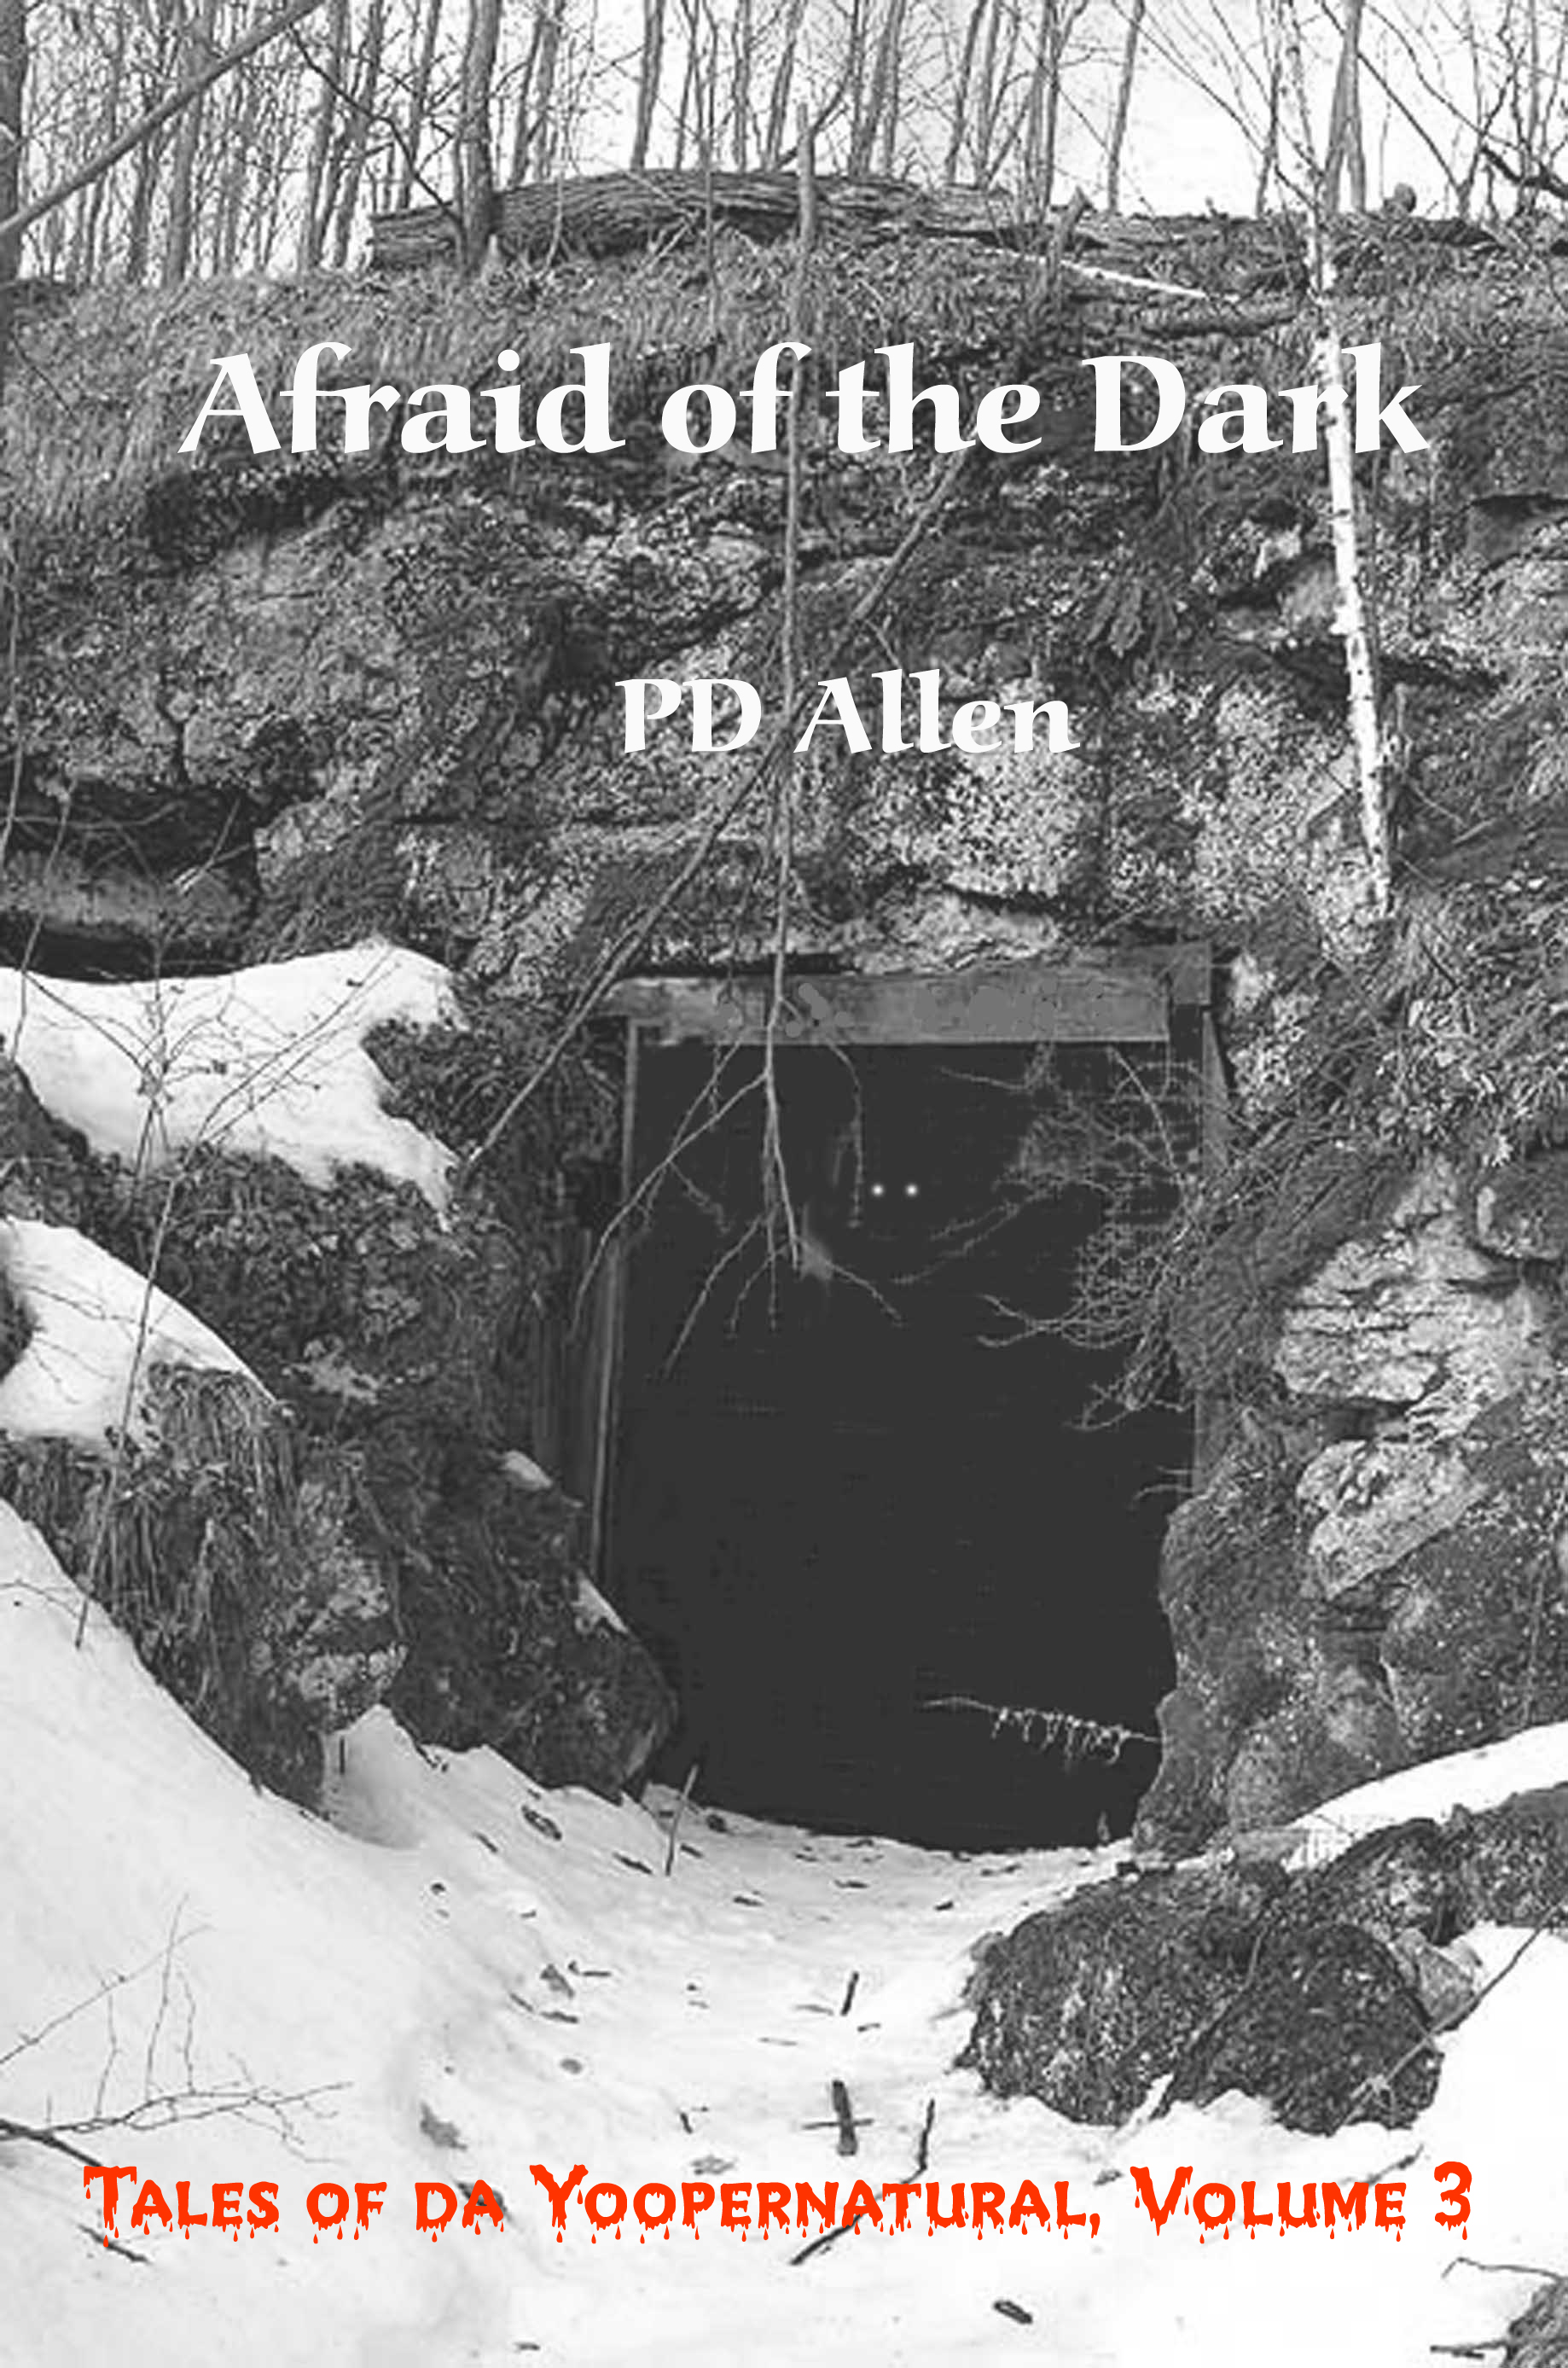 Afriad of the Dark; tales of da Yoopernatural, Volume 3